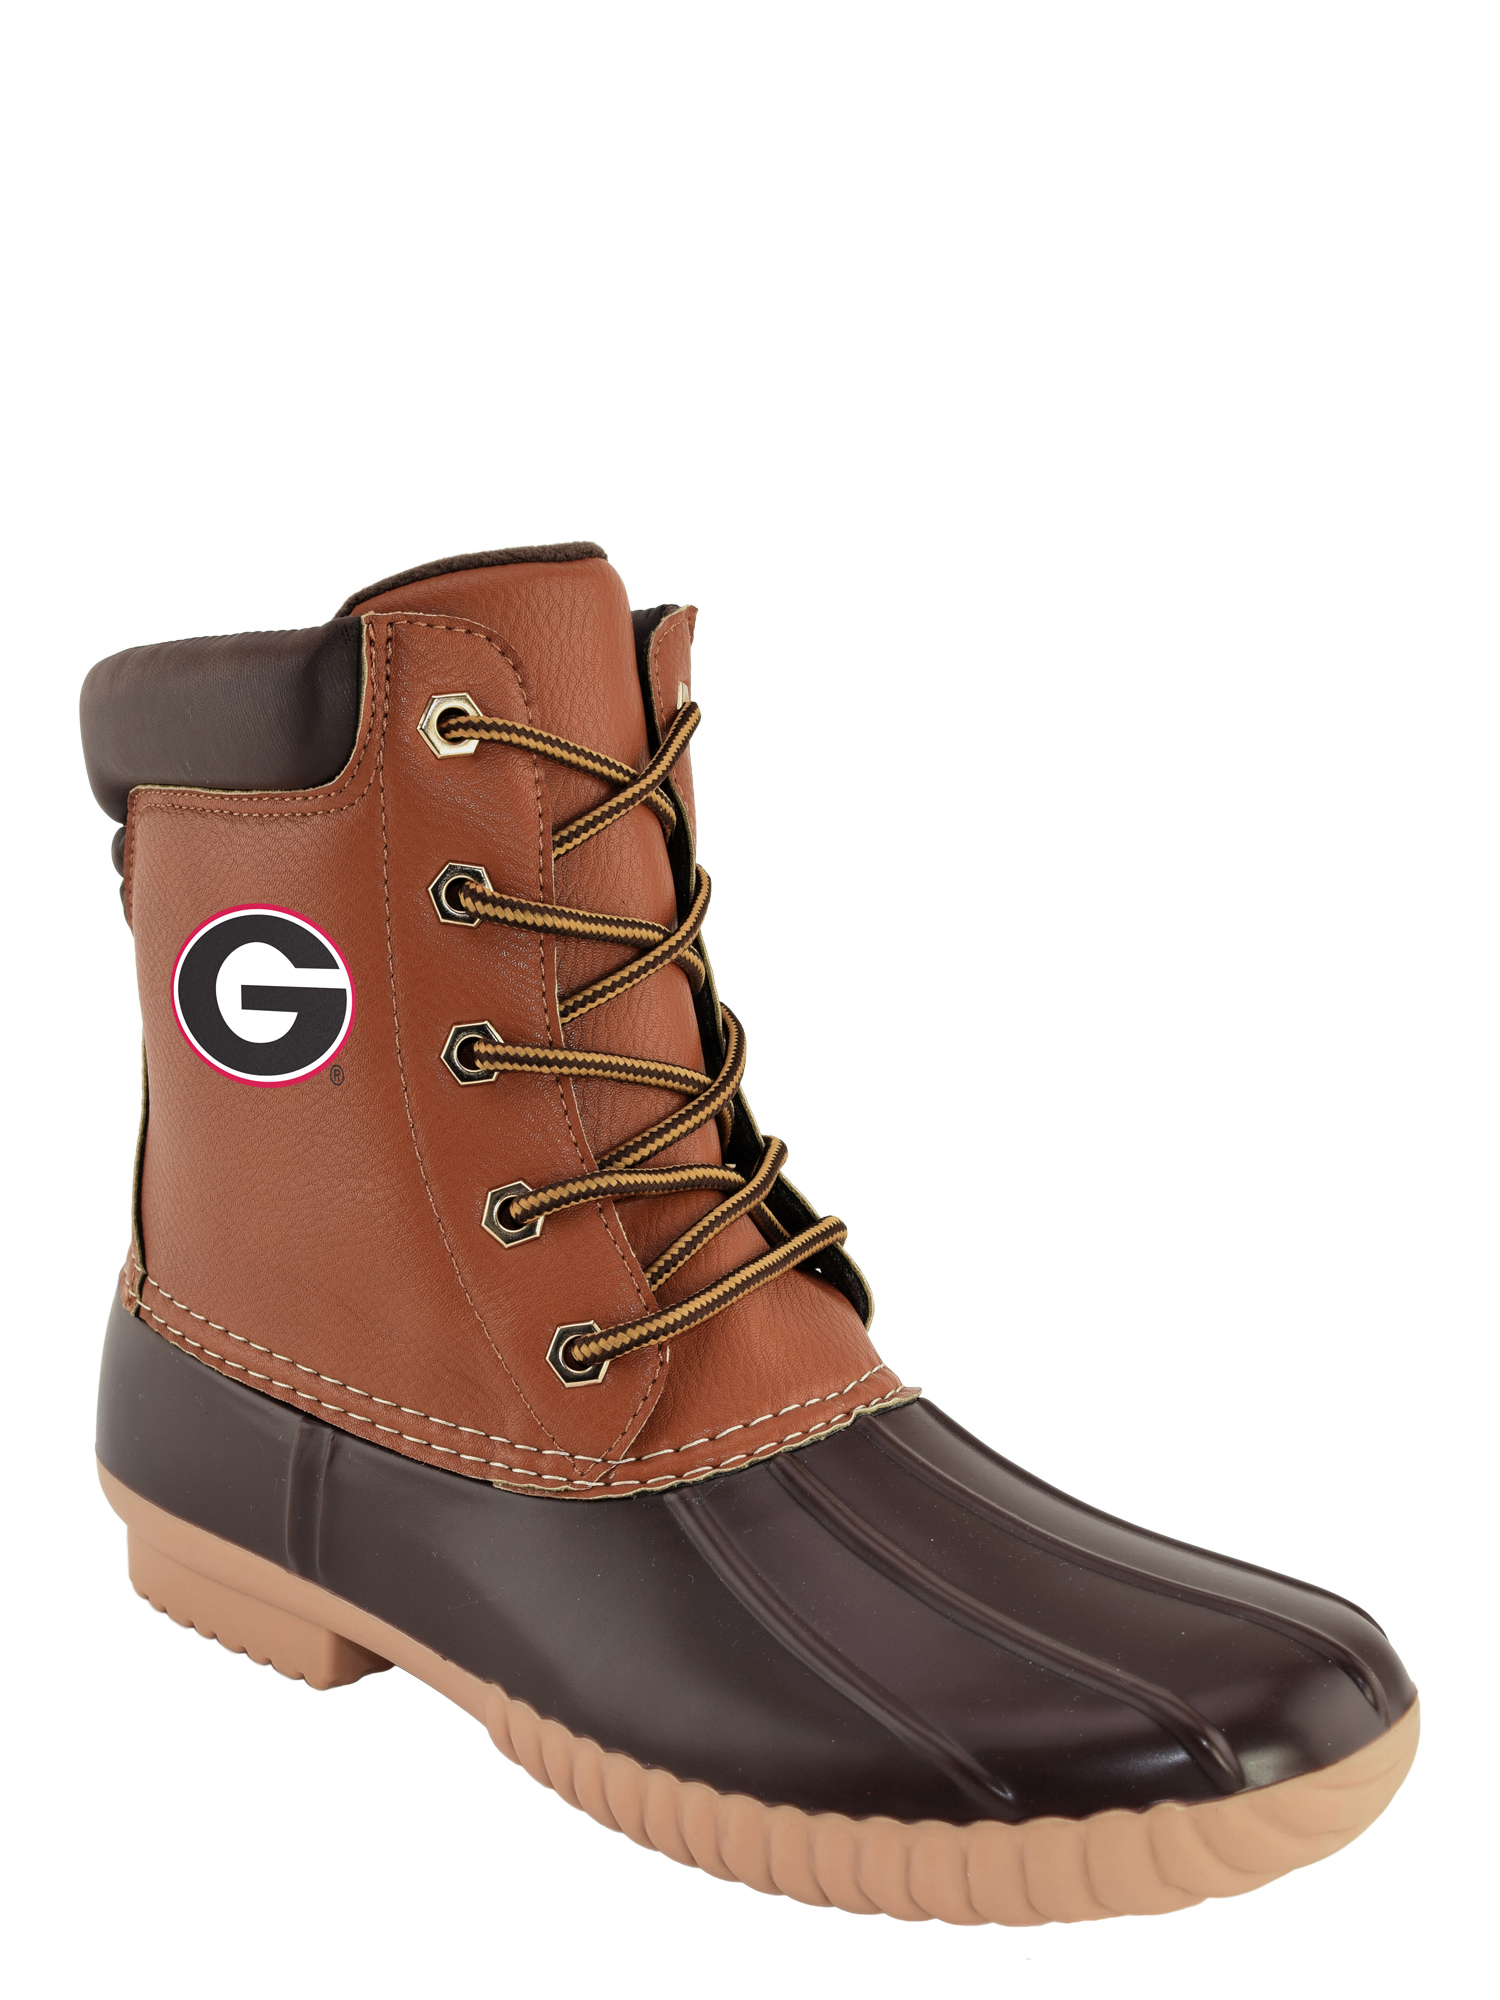 NCAA Men's Georgia -Duck Boot by RENAISSANCE IMPORTS INC